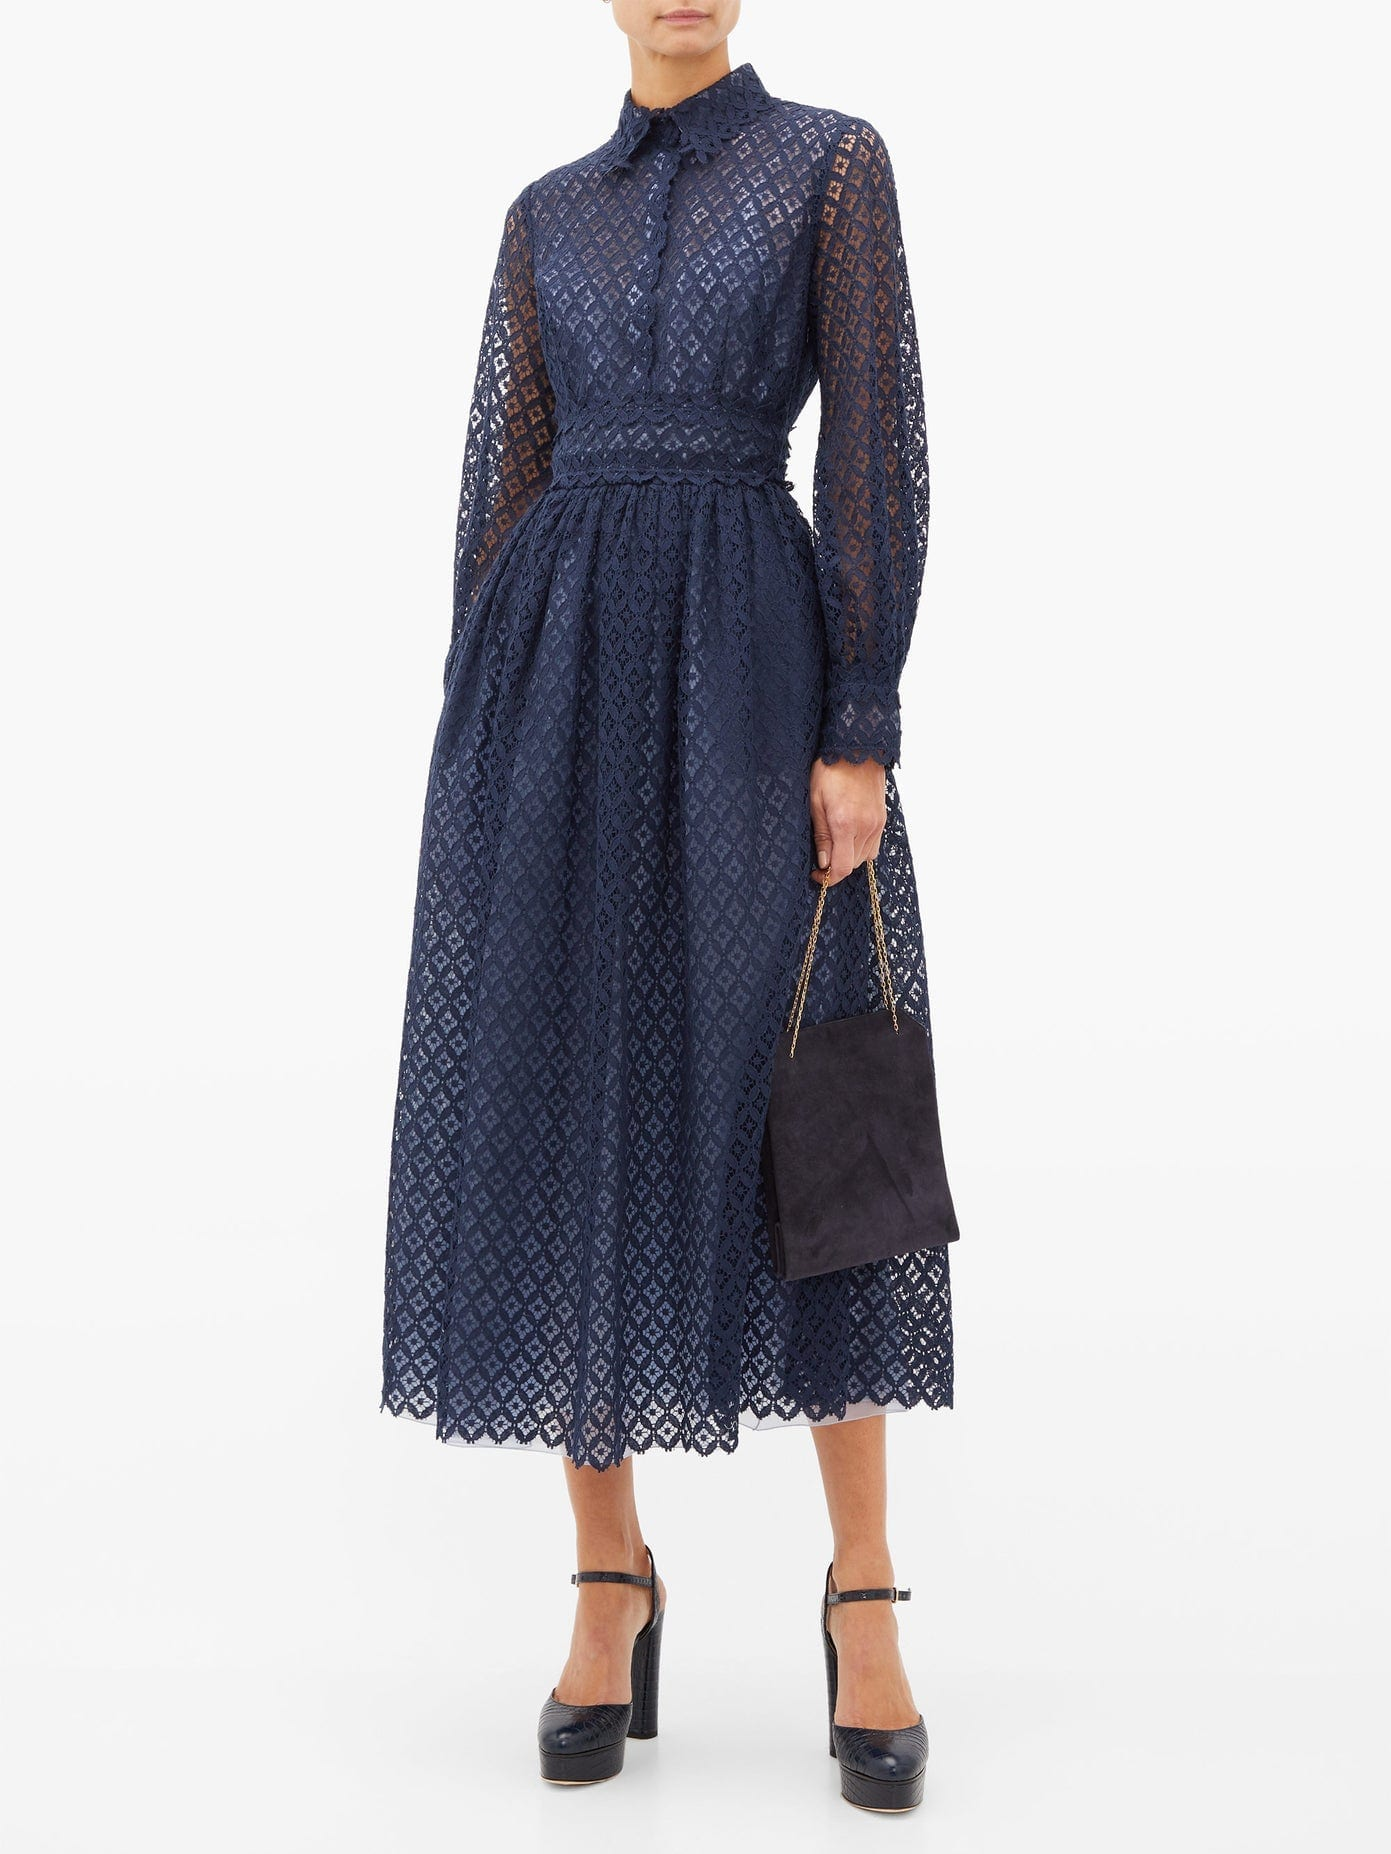 LUISA BECCARIA Peter Pan Collar Lace Maxi Dress